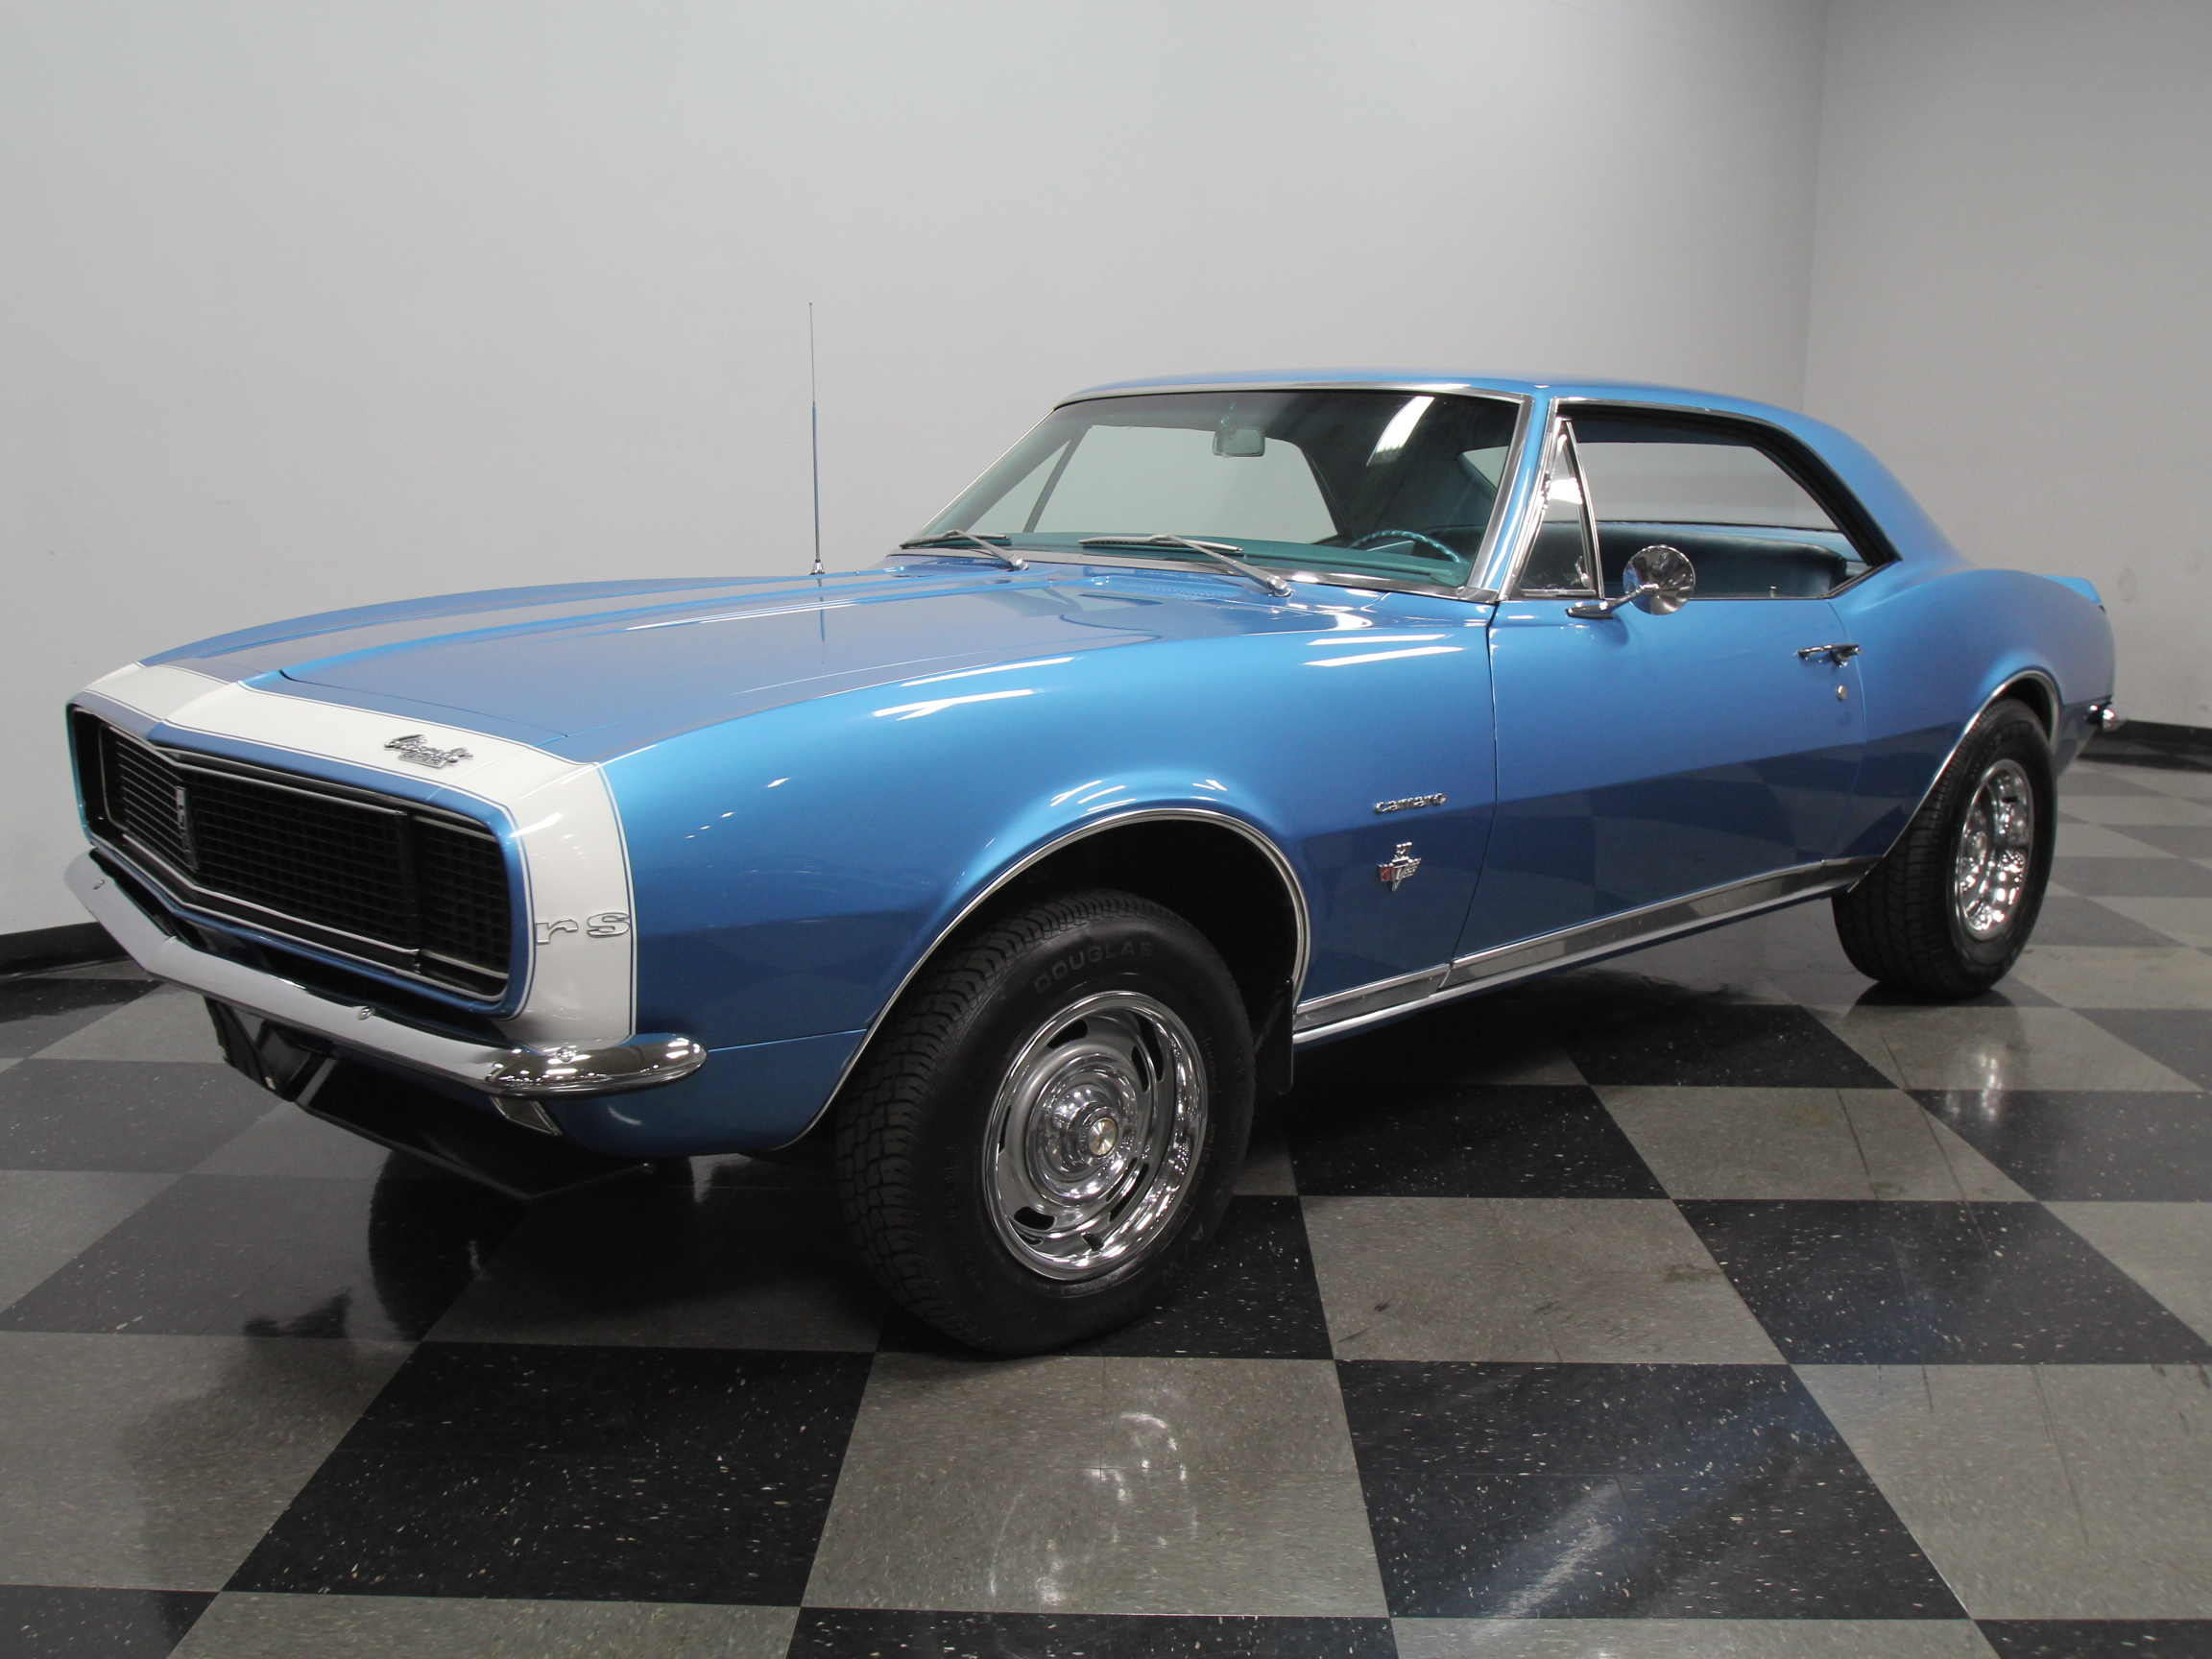 1967 Chevrolet Camaro Streetside Classics The Nation S Trusted Classic Car Consignment Dealer